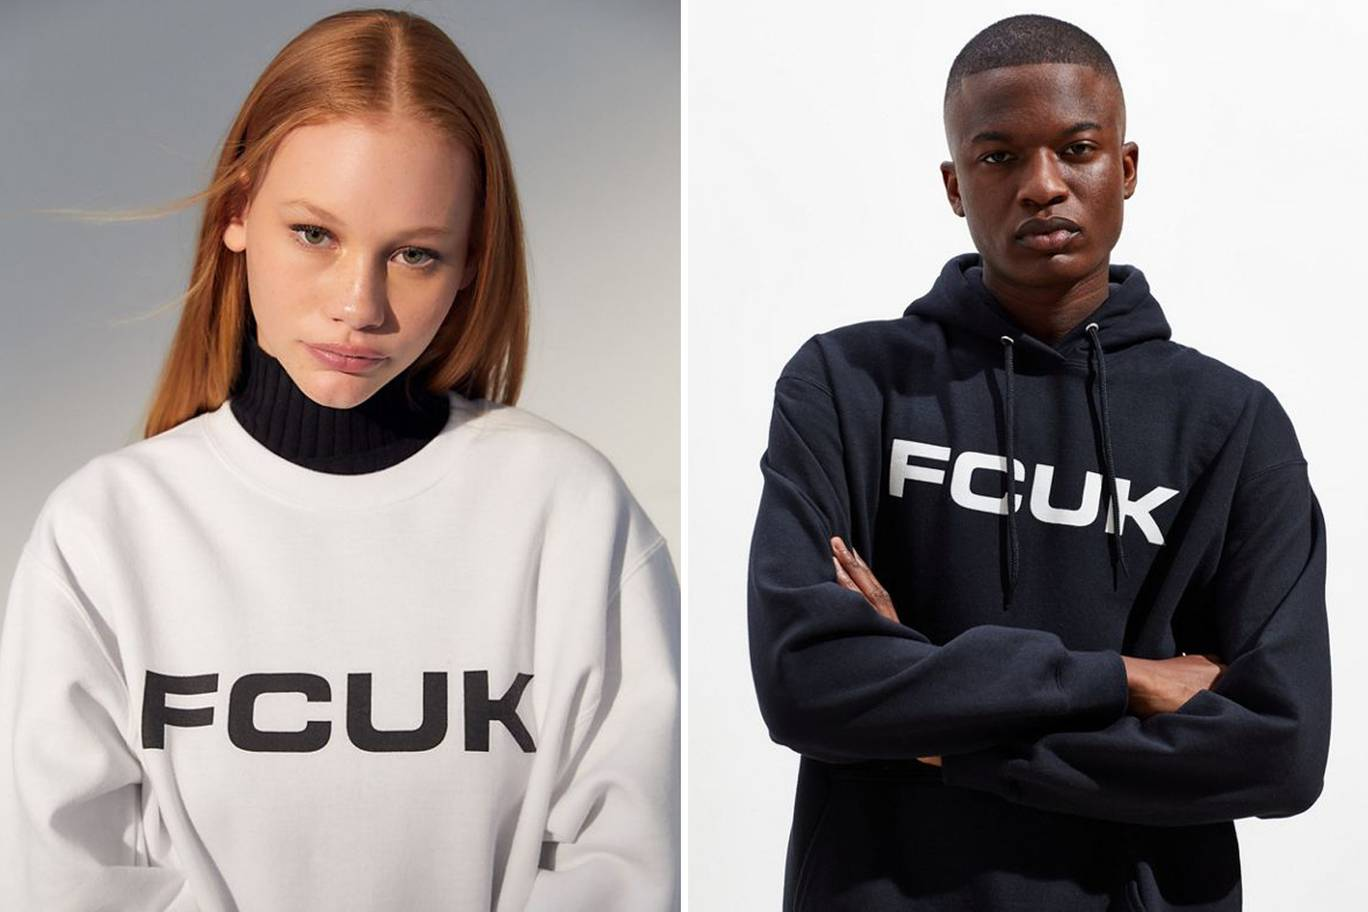 388eca54d9b FCUK fashion: French Connection's nineties slogan is back ...